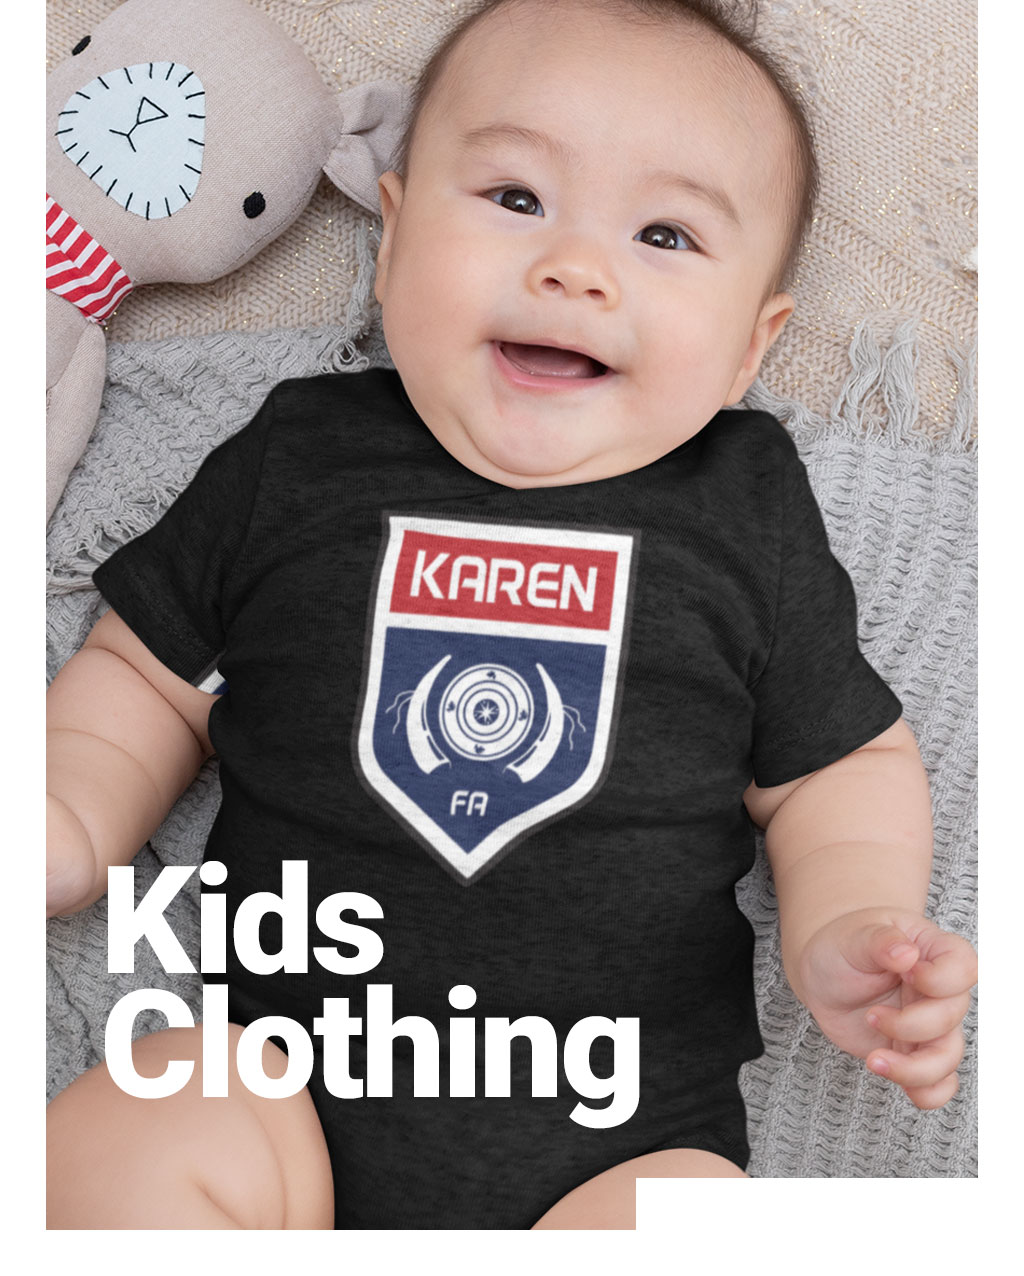 karen-national-team-full-image-header-mobile-kids-clothing-new